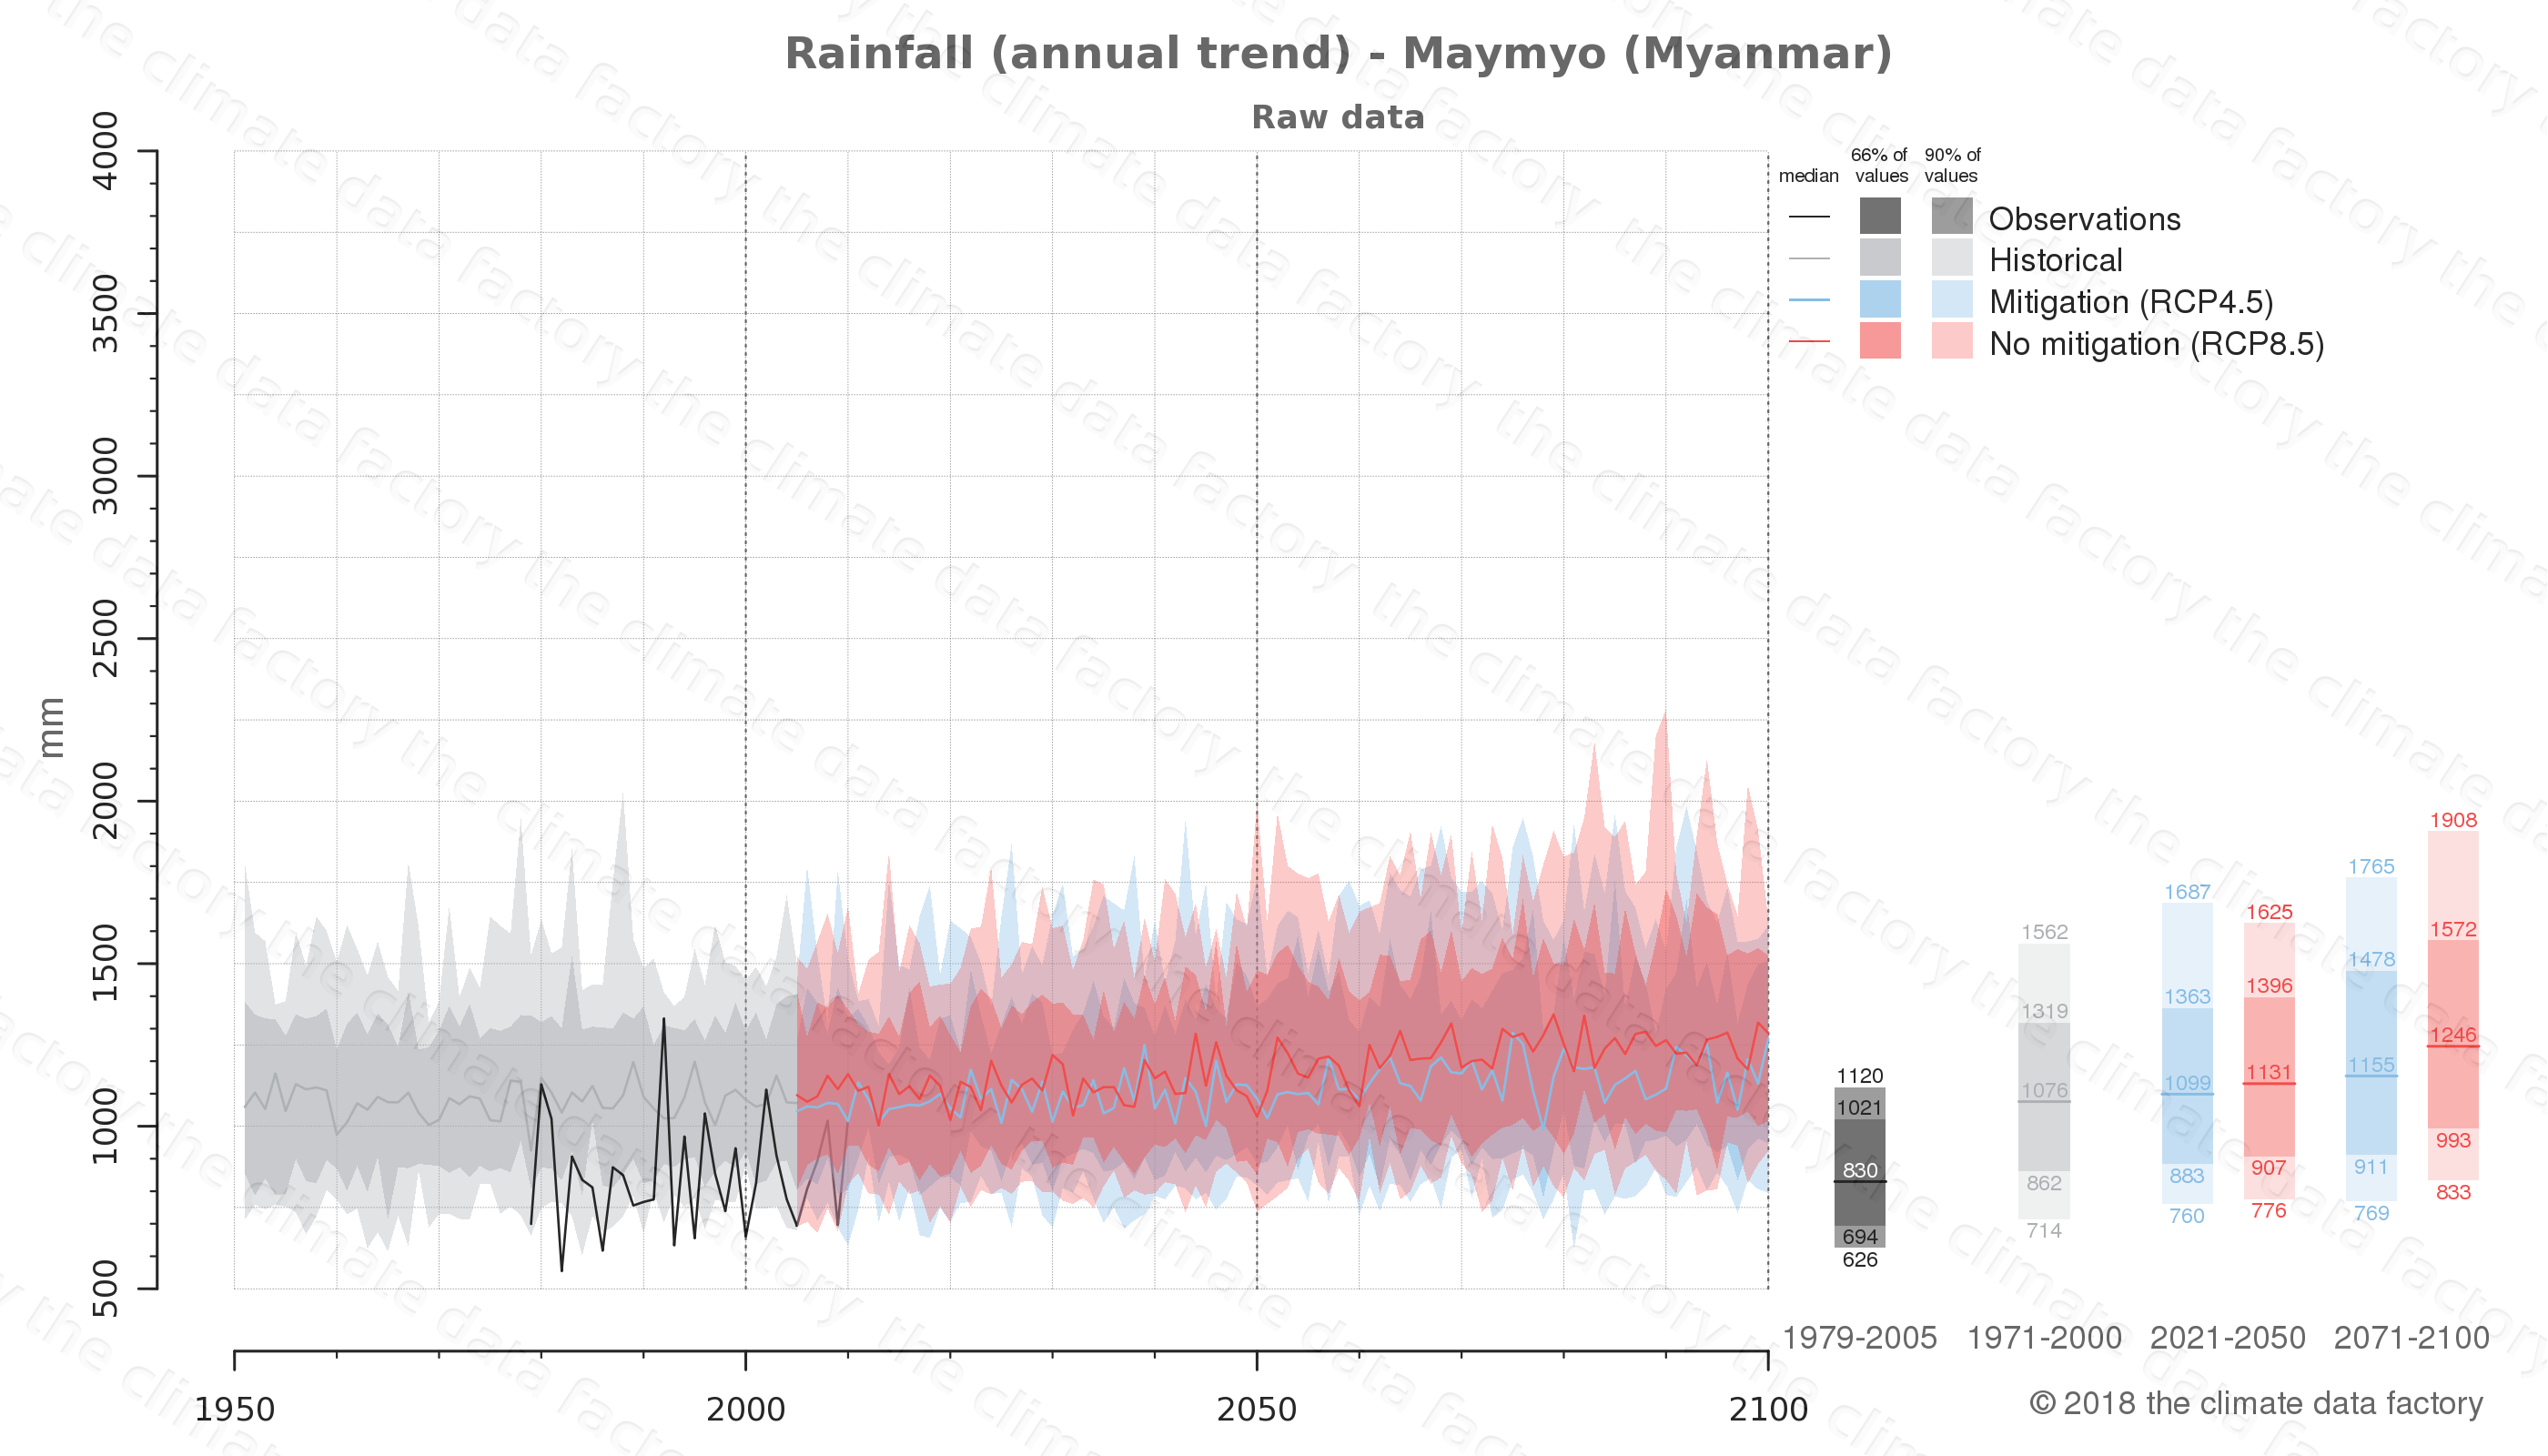 climate change data policy adaptation climate graph city data rainfall maymyo myanmar